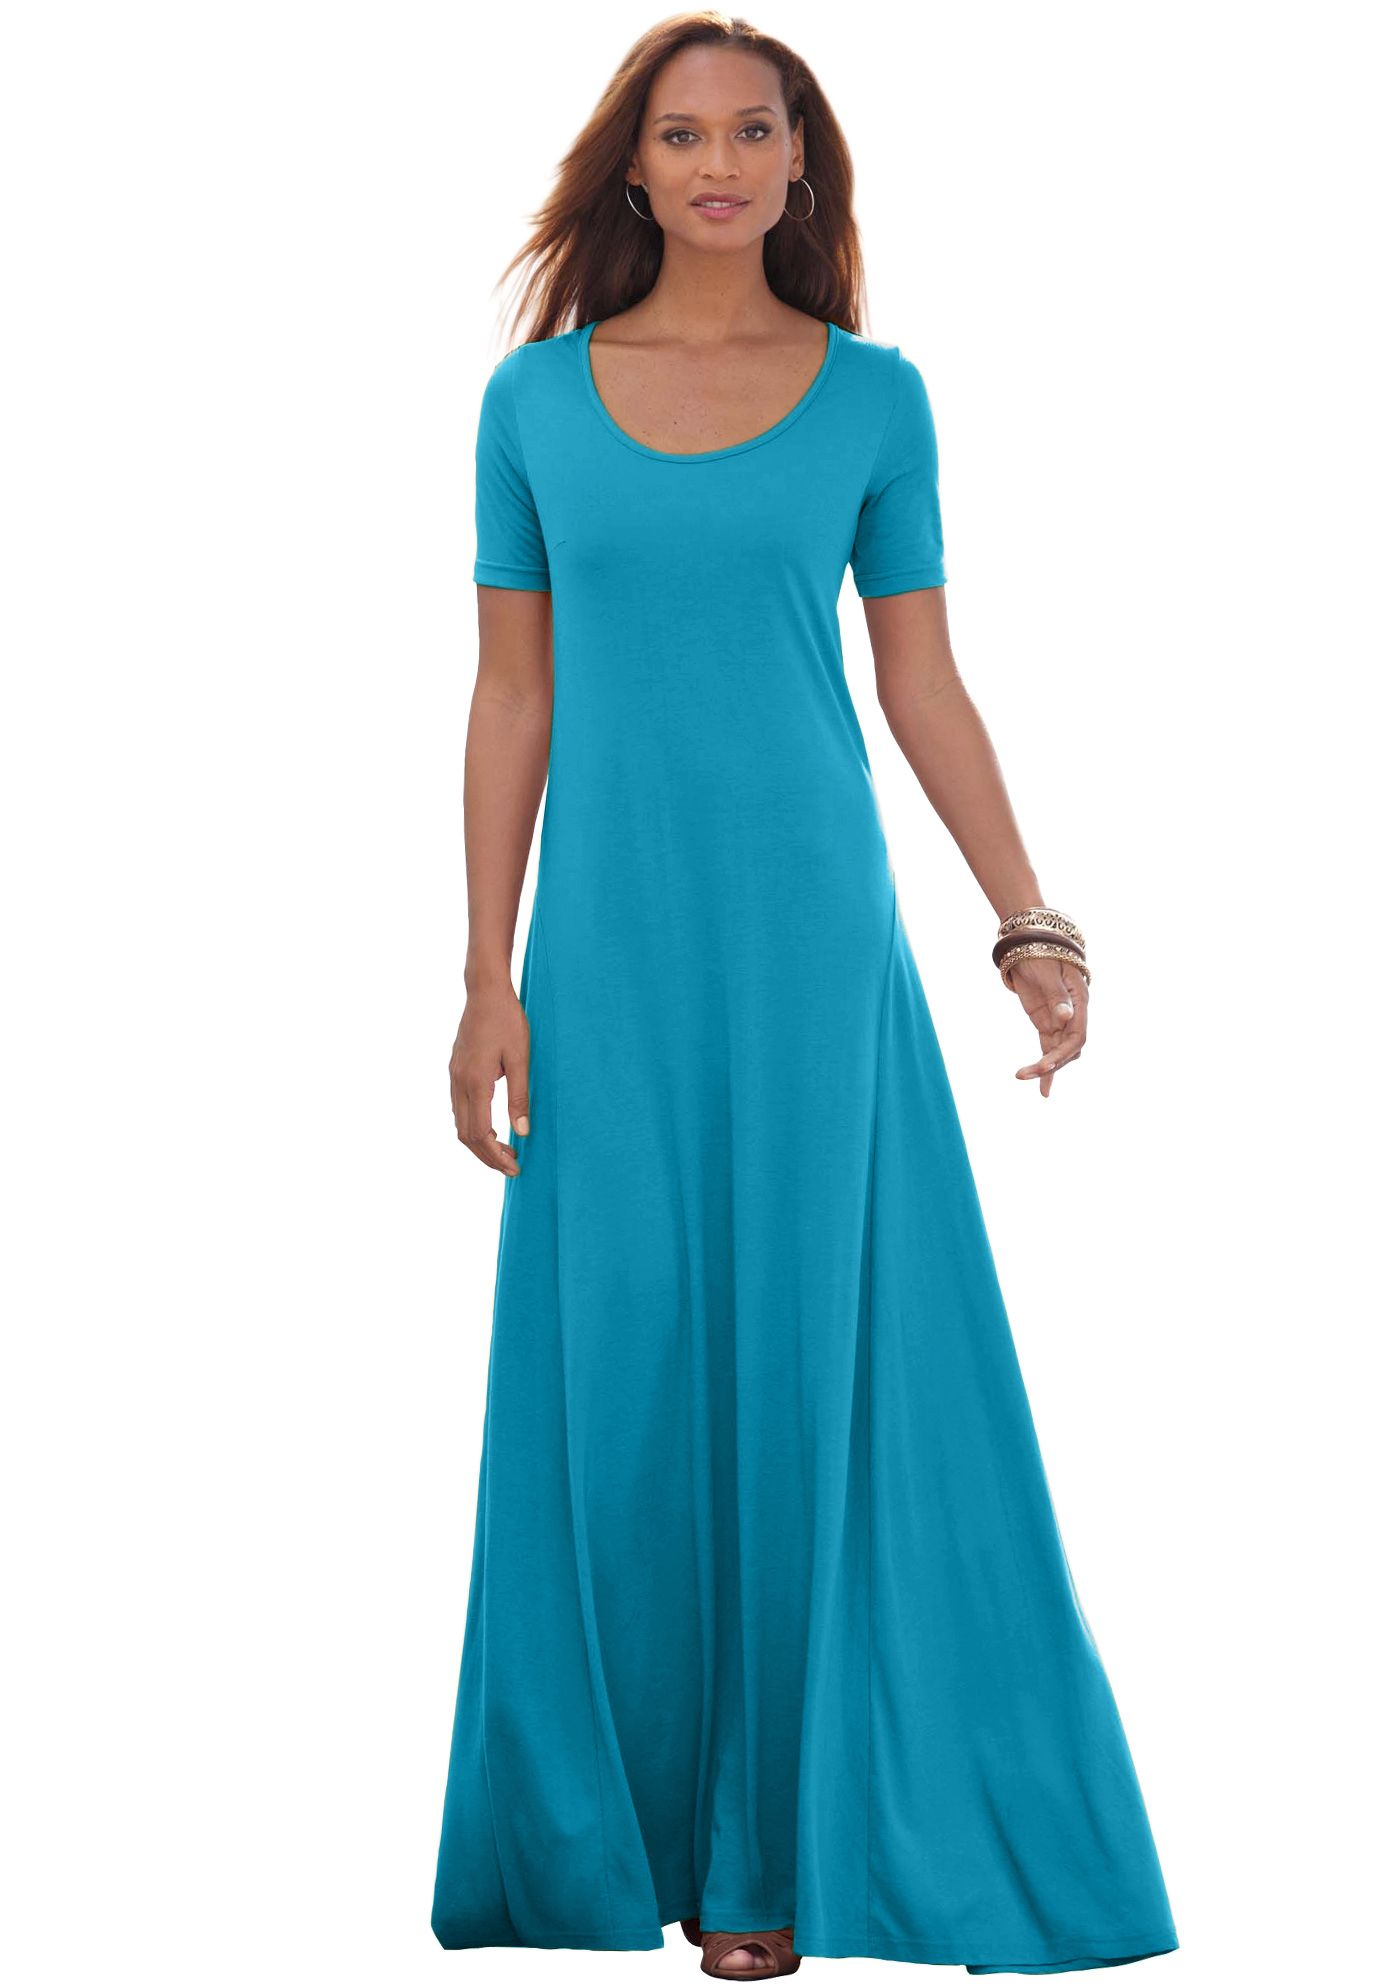 Plus Size Petite Maxi Dress | Dresses and Skirts for wedding ...